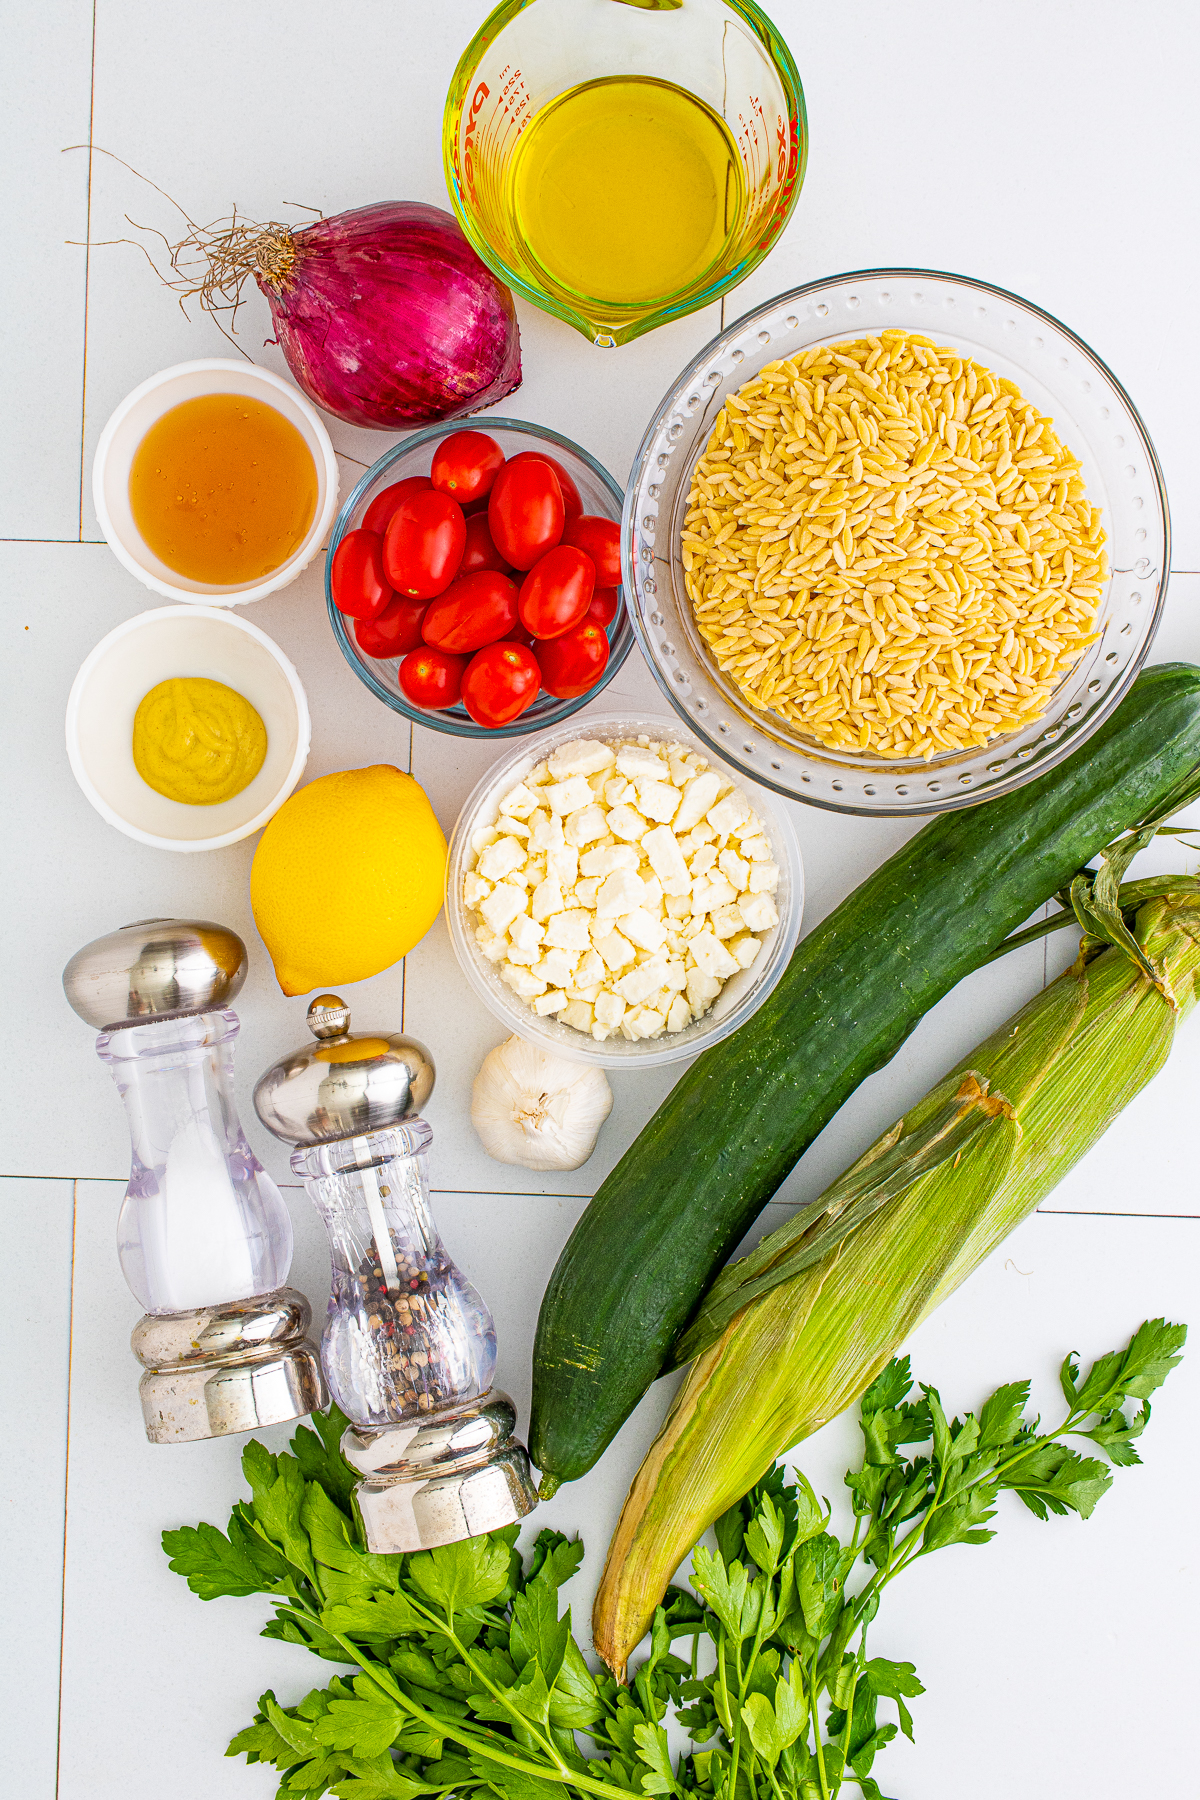 Ingredients needed to make Orzo Pasta Salad